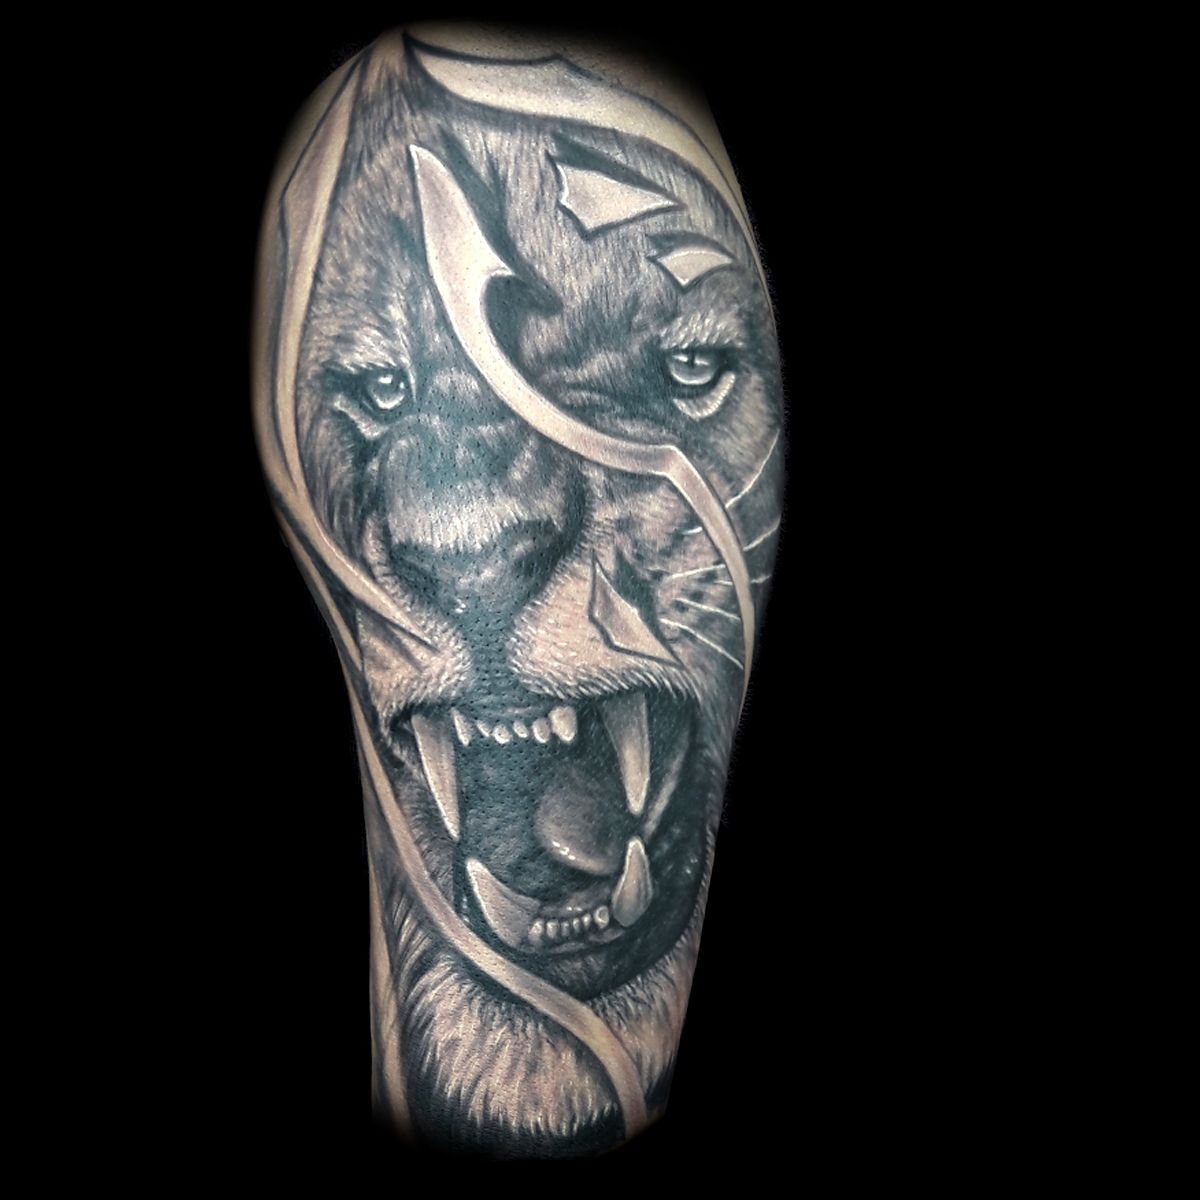 Specialized 3d Tattoo Artist In San Francisco At Masterpiece Tattoo 3d Tattoo Artist Tattoos Tattoo Artists